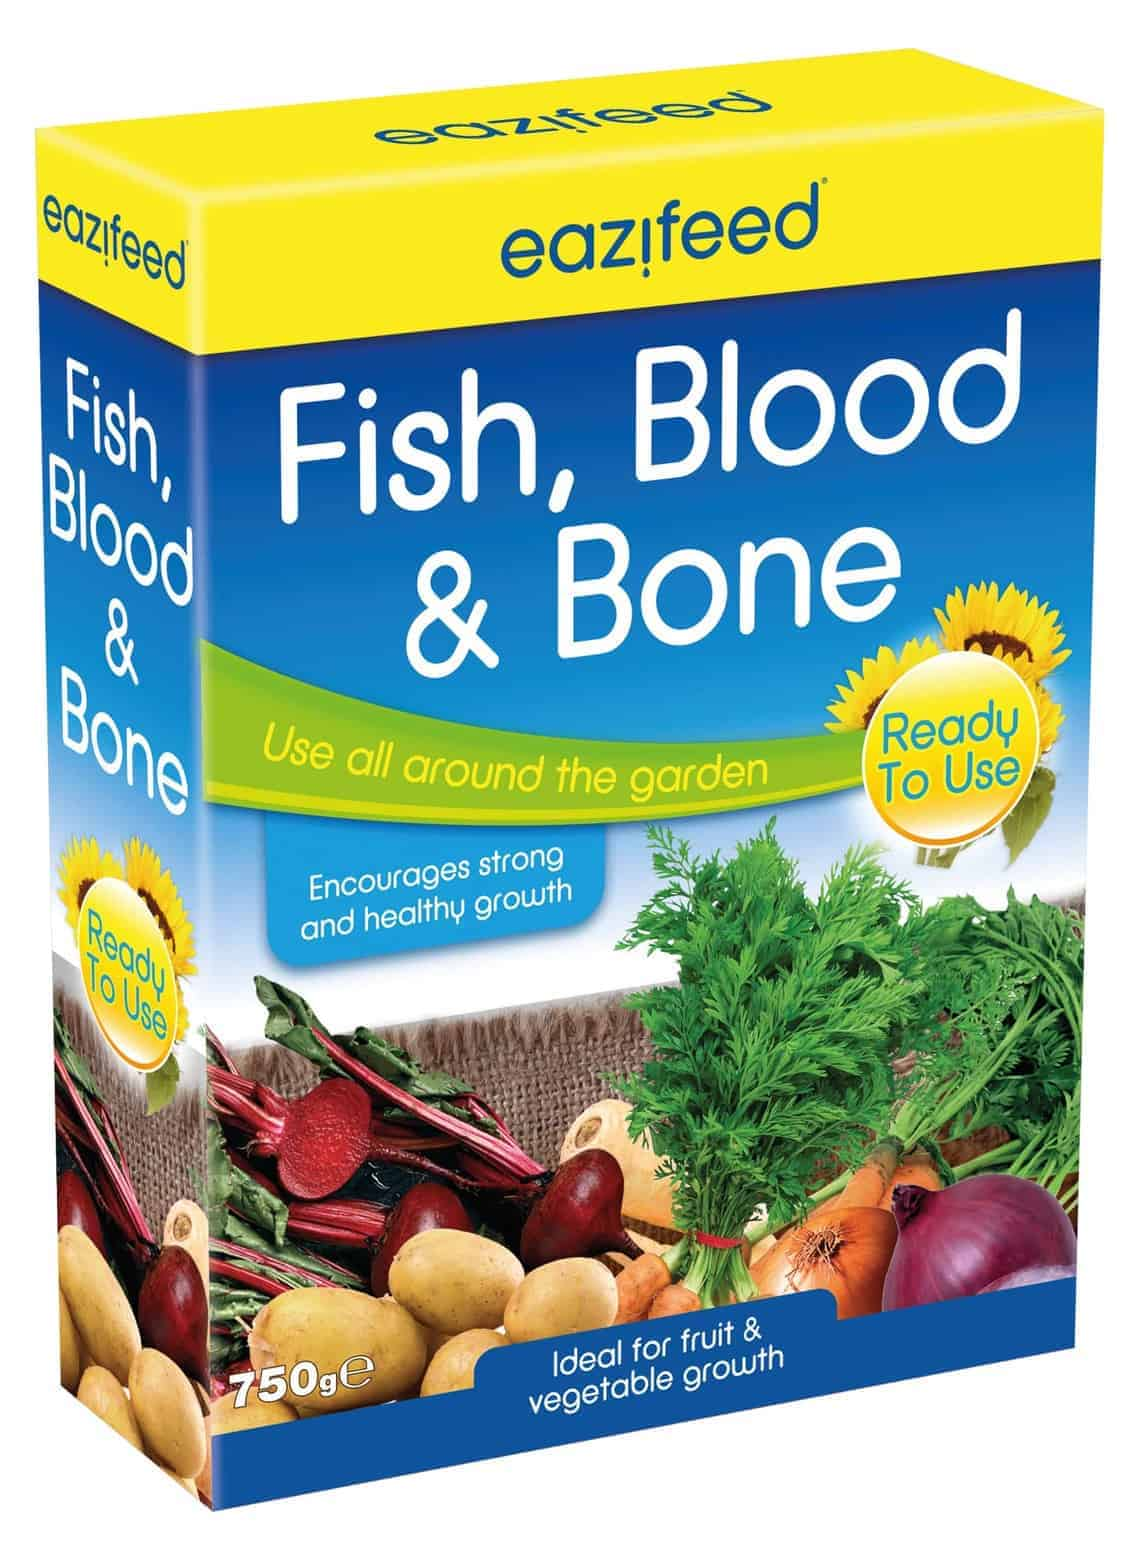 Eazifeed Fish Blood Bone